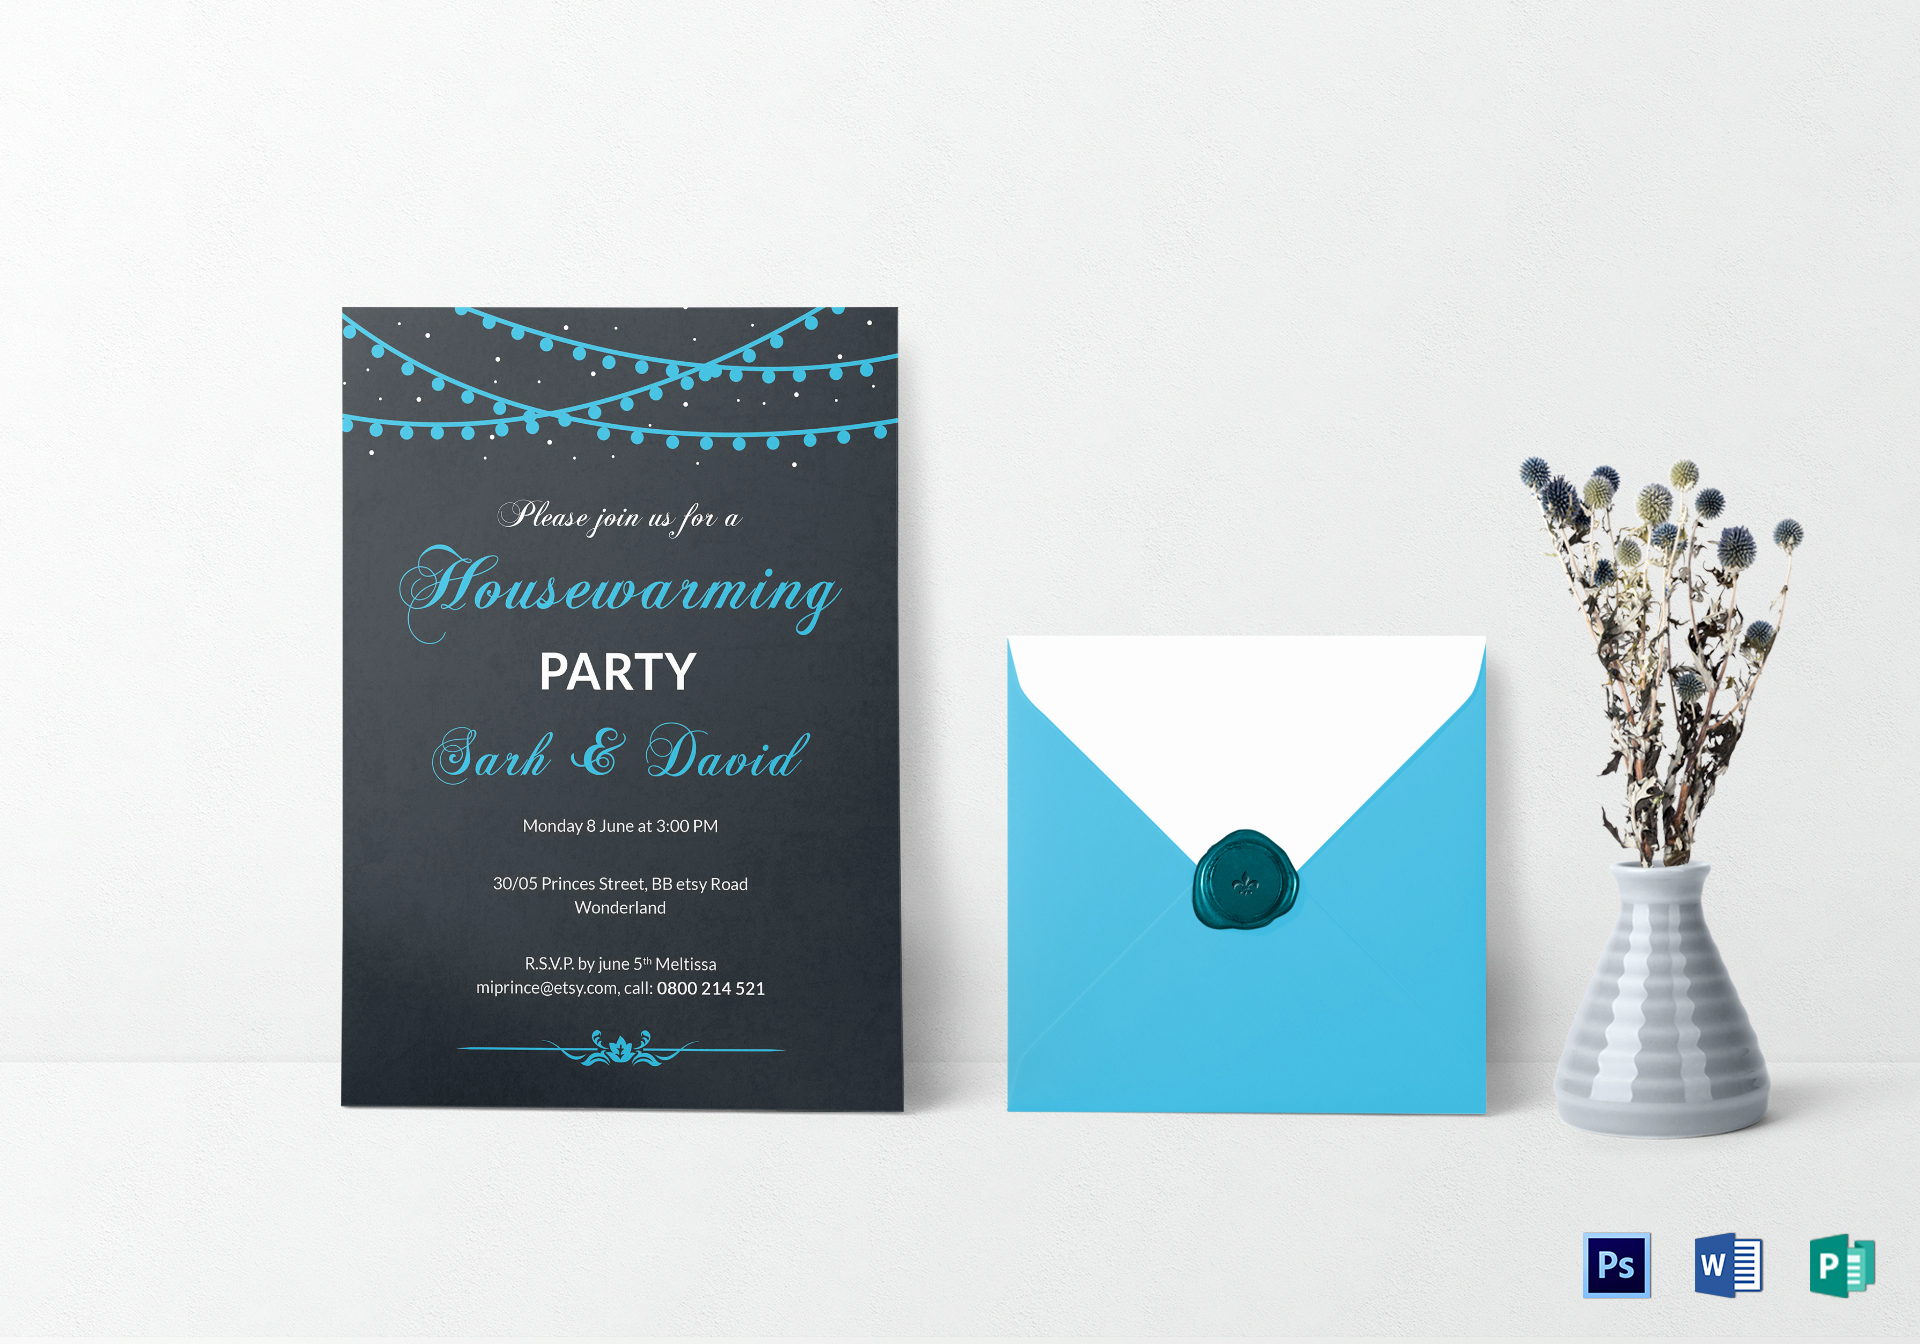 Housewarming Invitation Template Microsoft Word Fresh Classic Housewarming Invitation Design Template In Psd